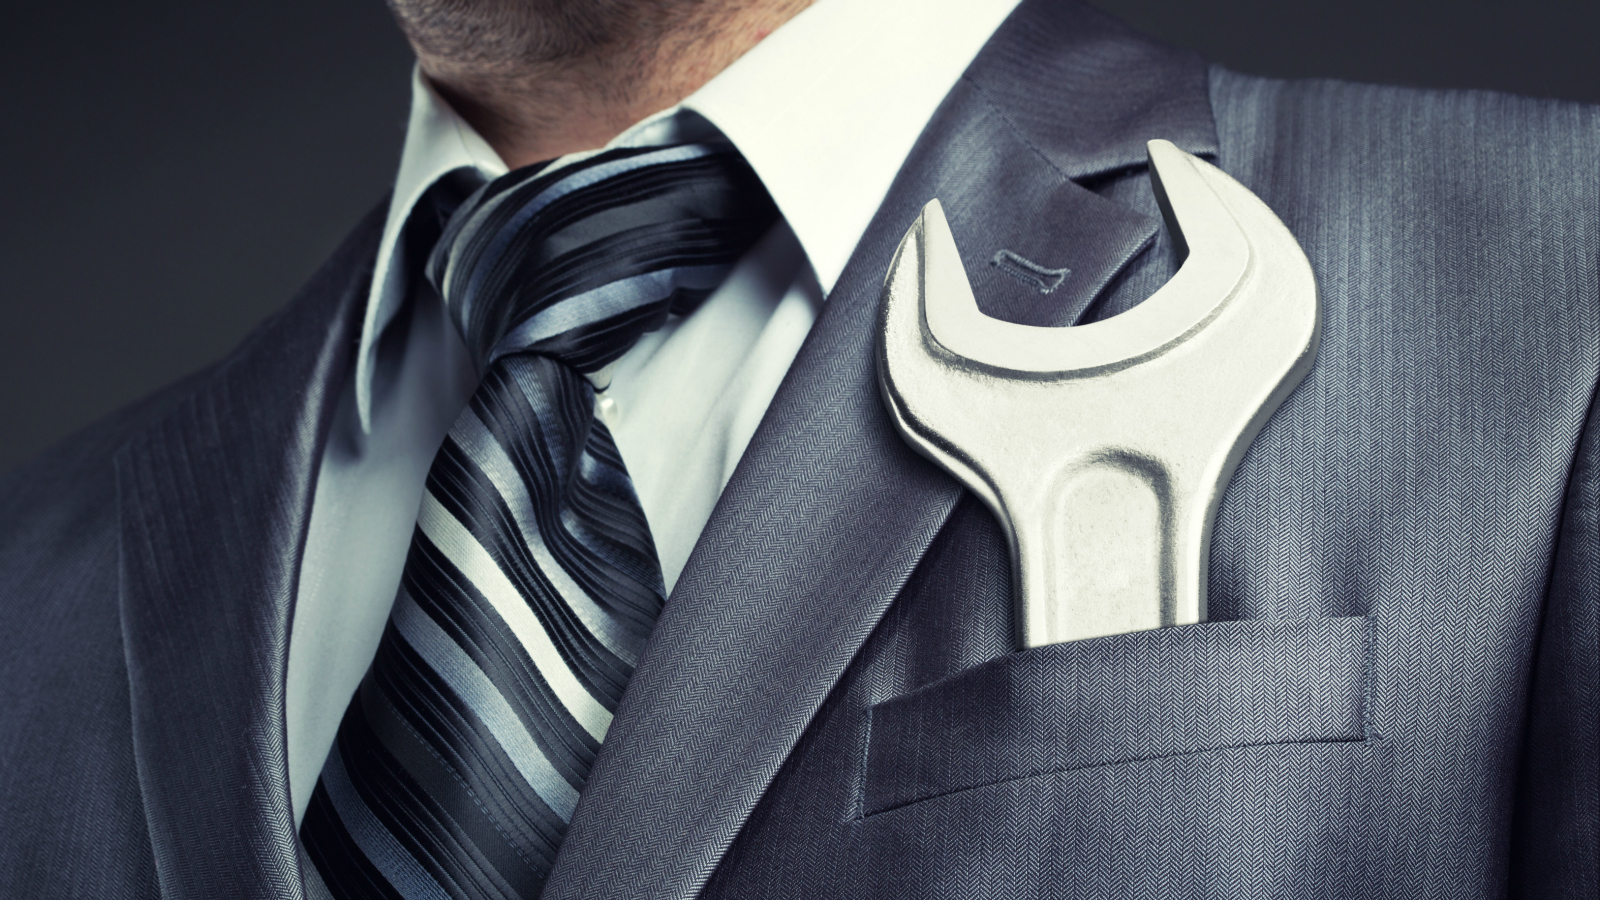 suited man with wrench in pocket